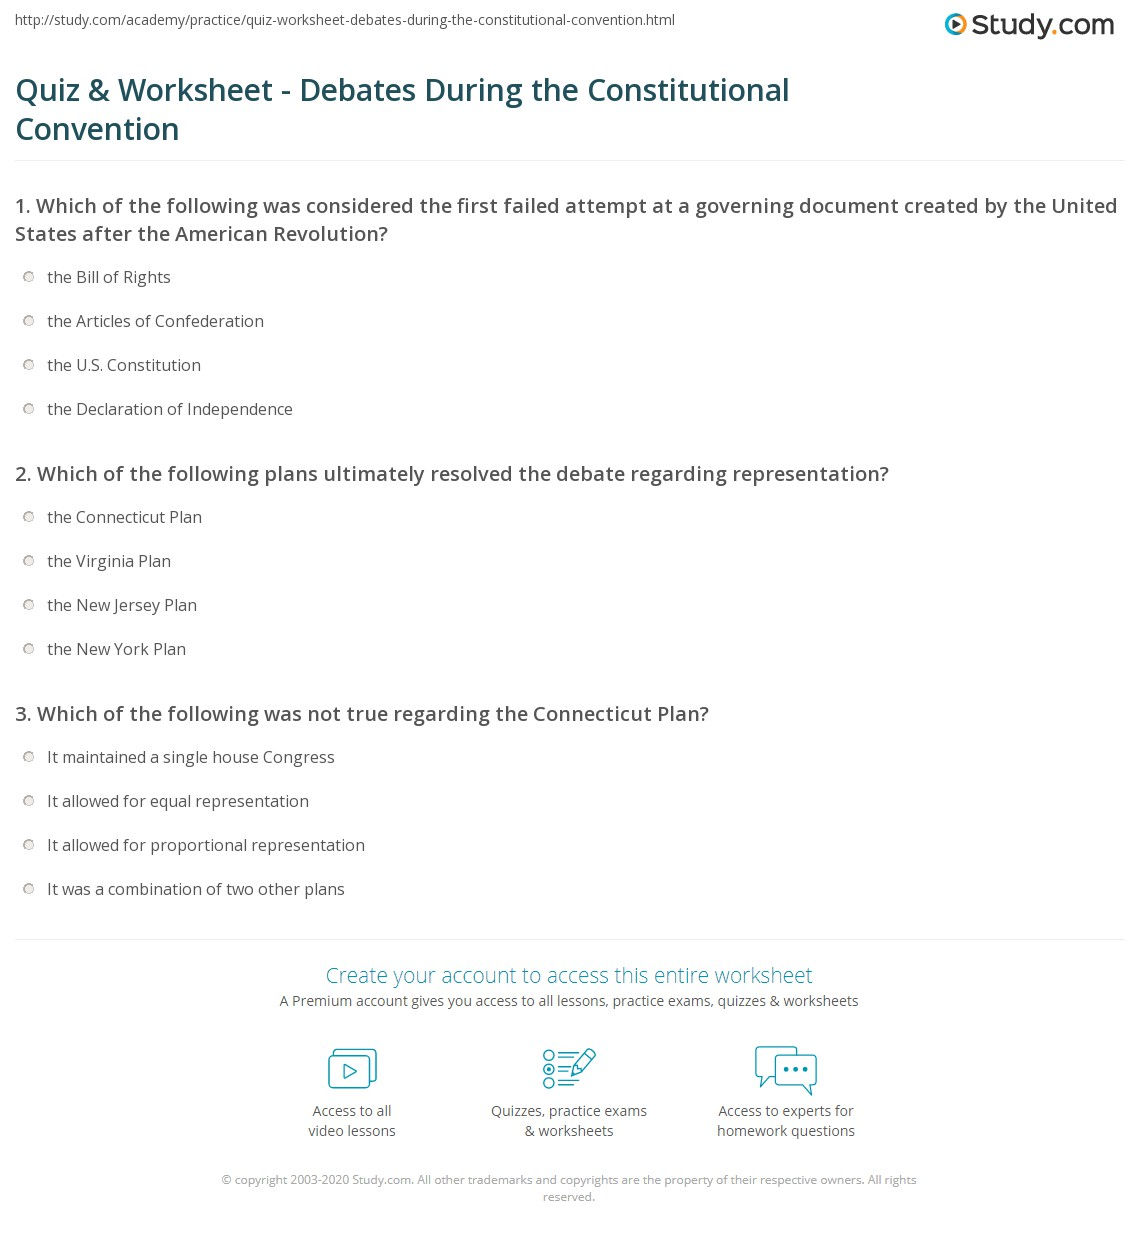 worksheet The Us Constitution Worksheet quiz worksheet debates during the constitutional convention print key from worksheet